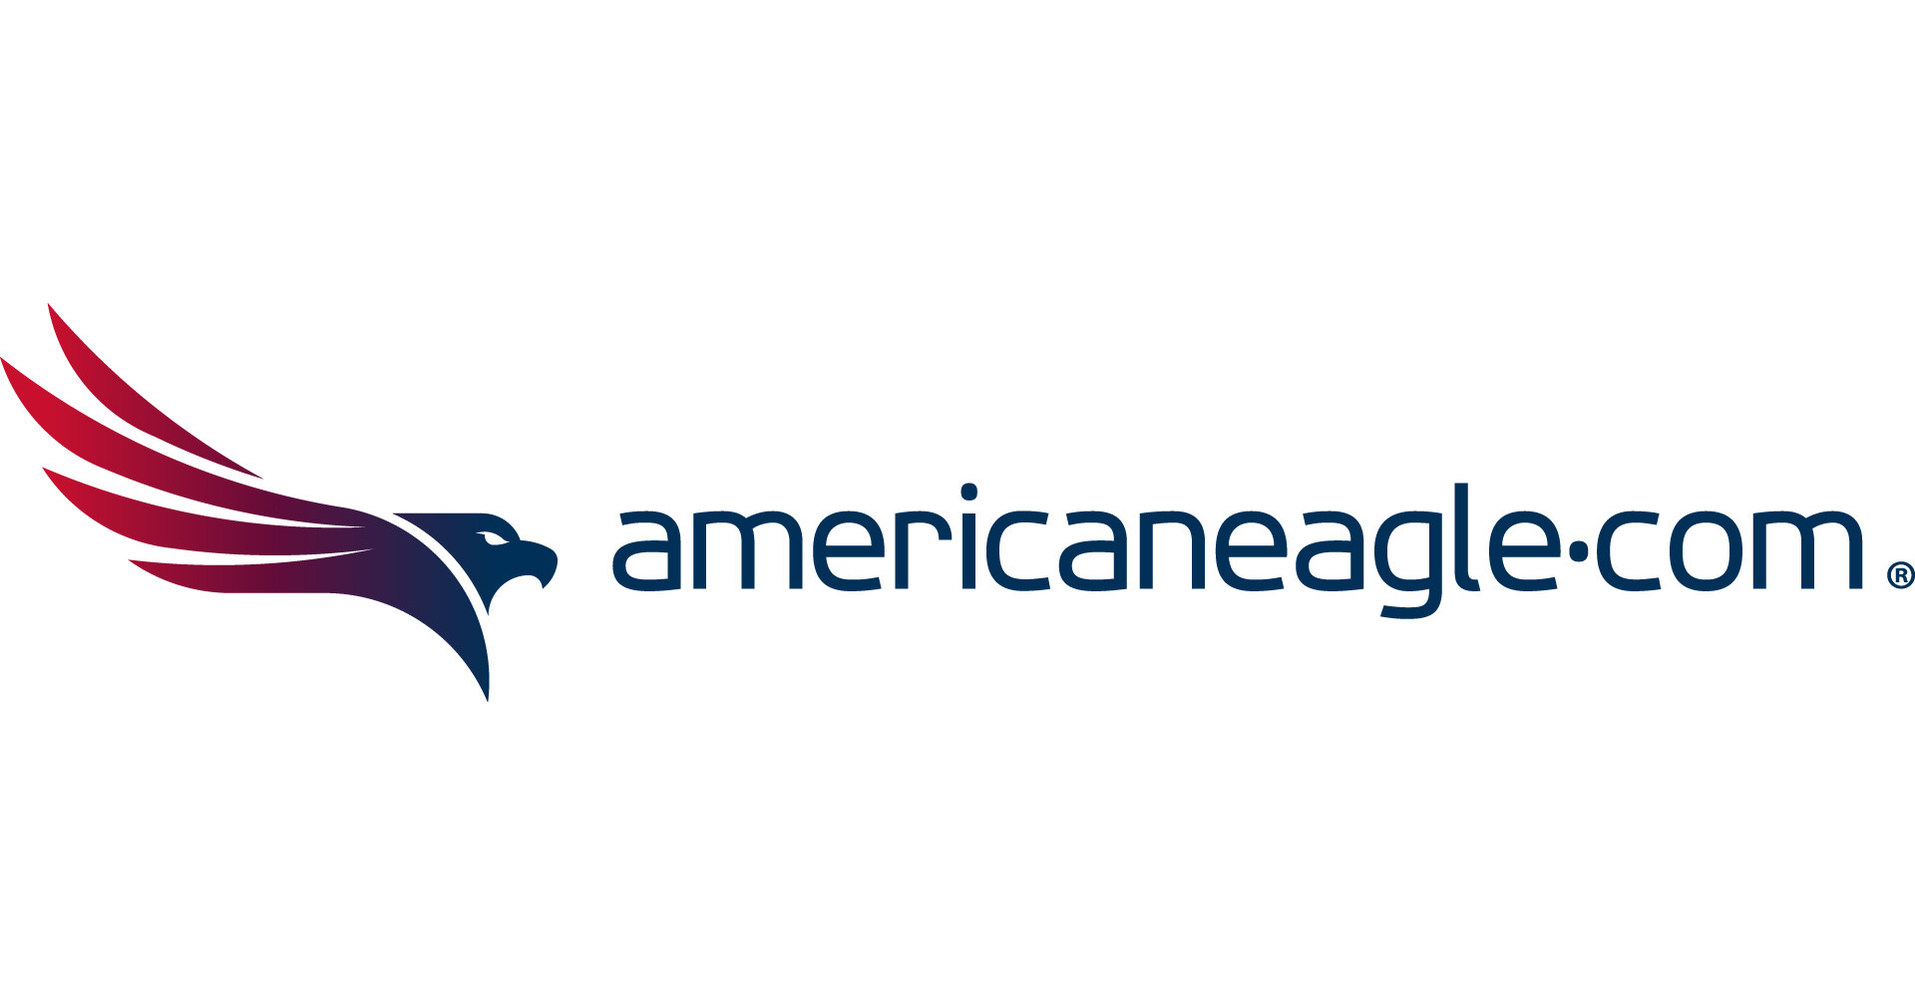 Three Americaneagle.com Clients Win Progress Sitefinity Website of the Year Awards